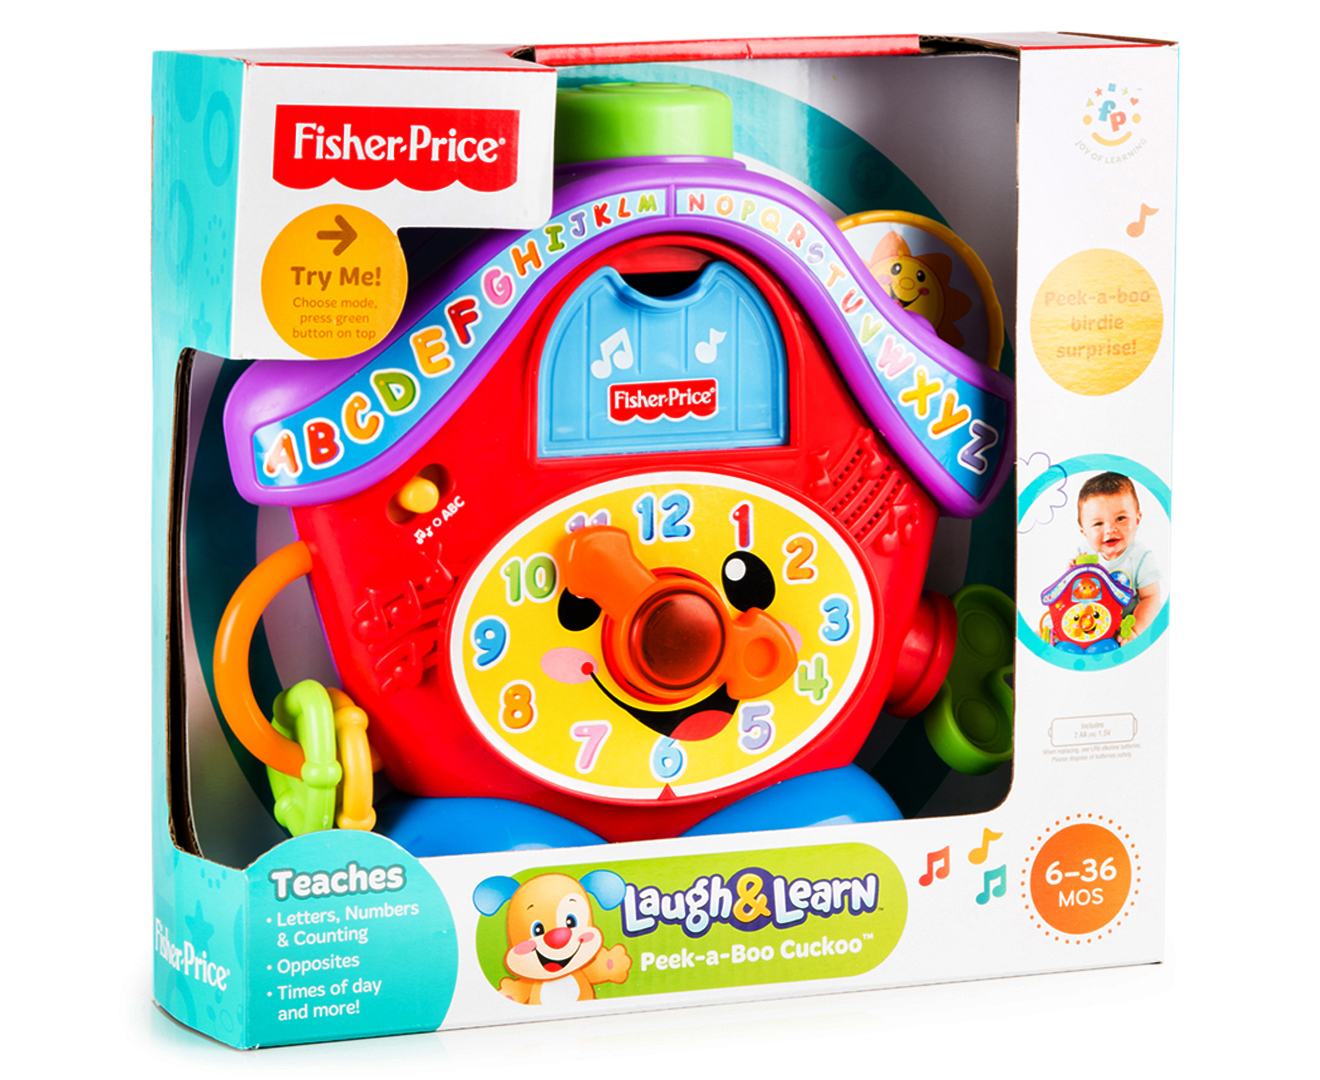 Fisher Price Laugh Learn Peek A Boo Cuckoo Clock Infant Learning Toaster